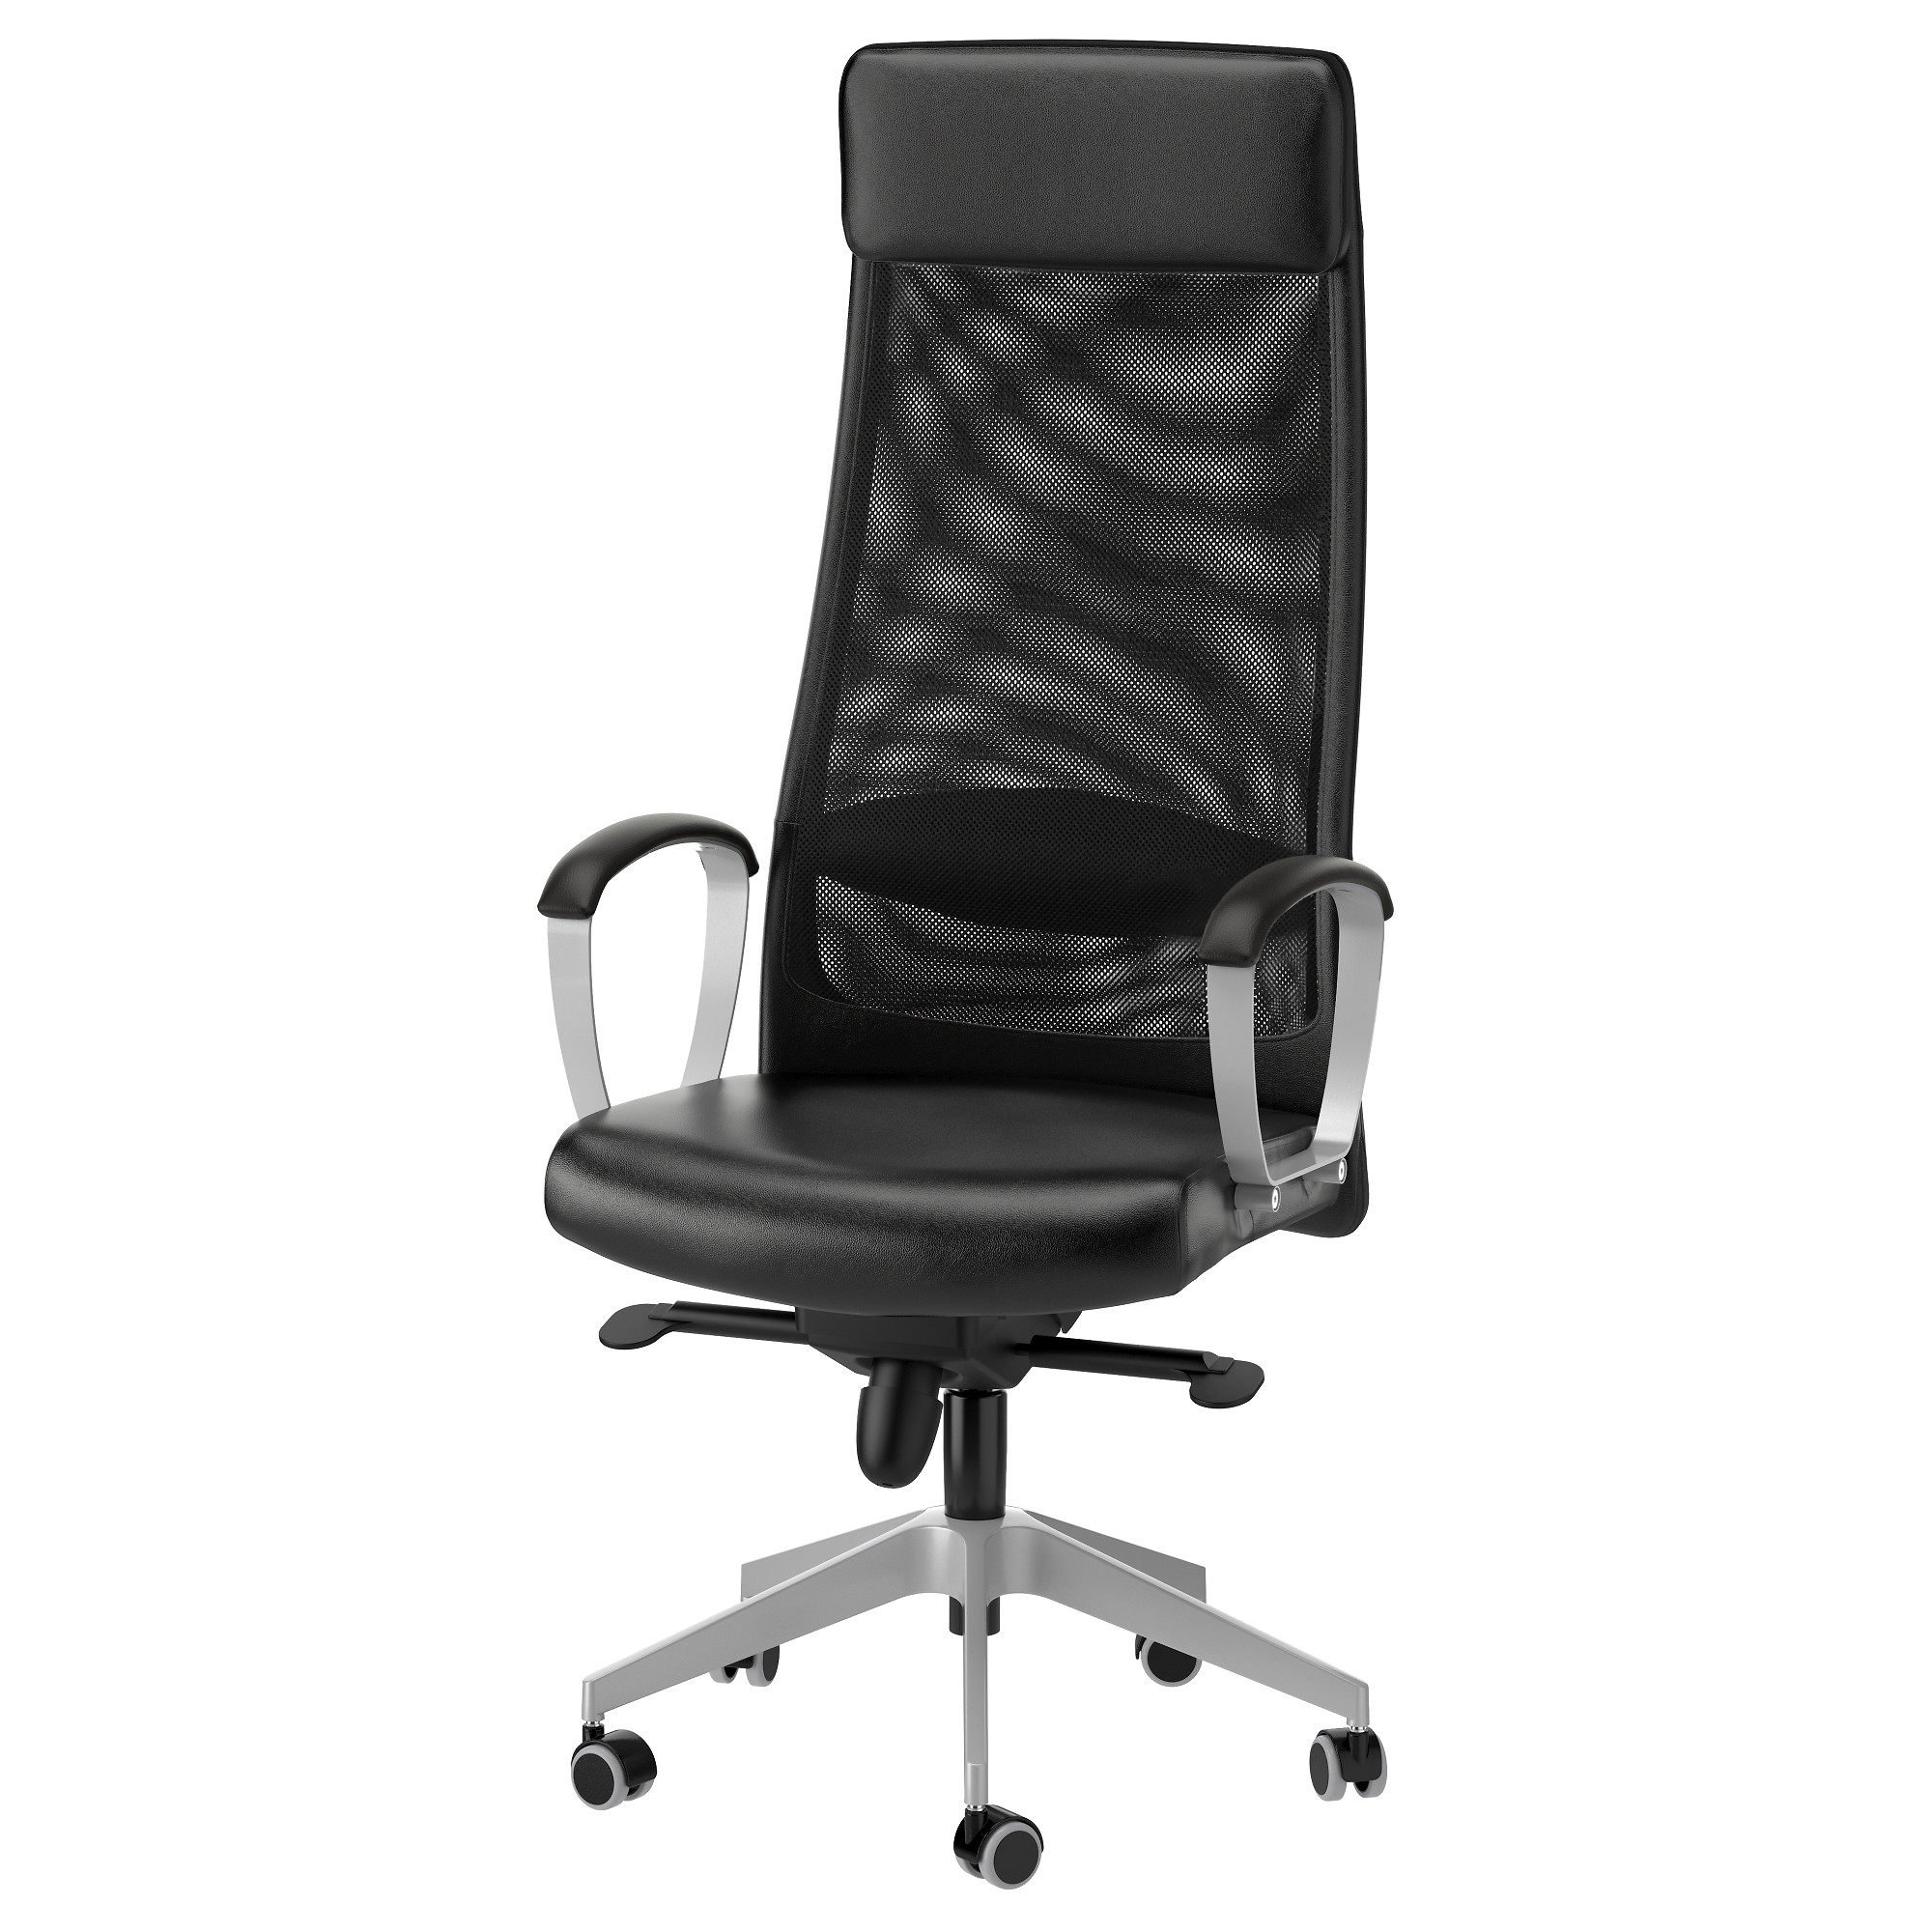 ikea office chairs canada. ikea office chairs canada a